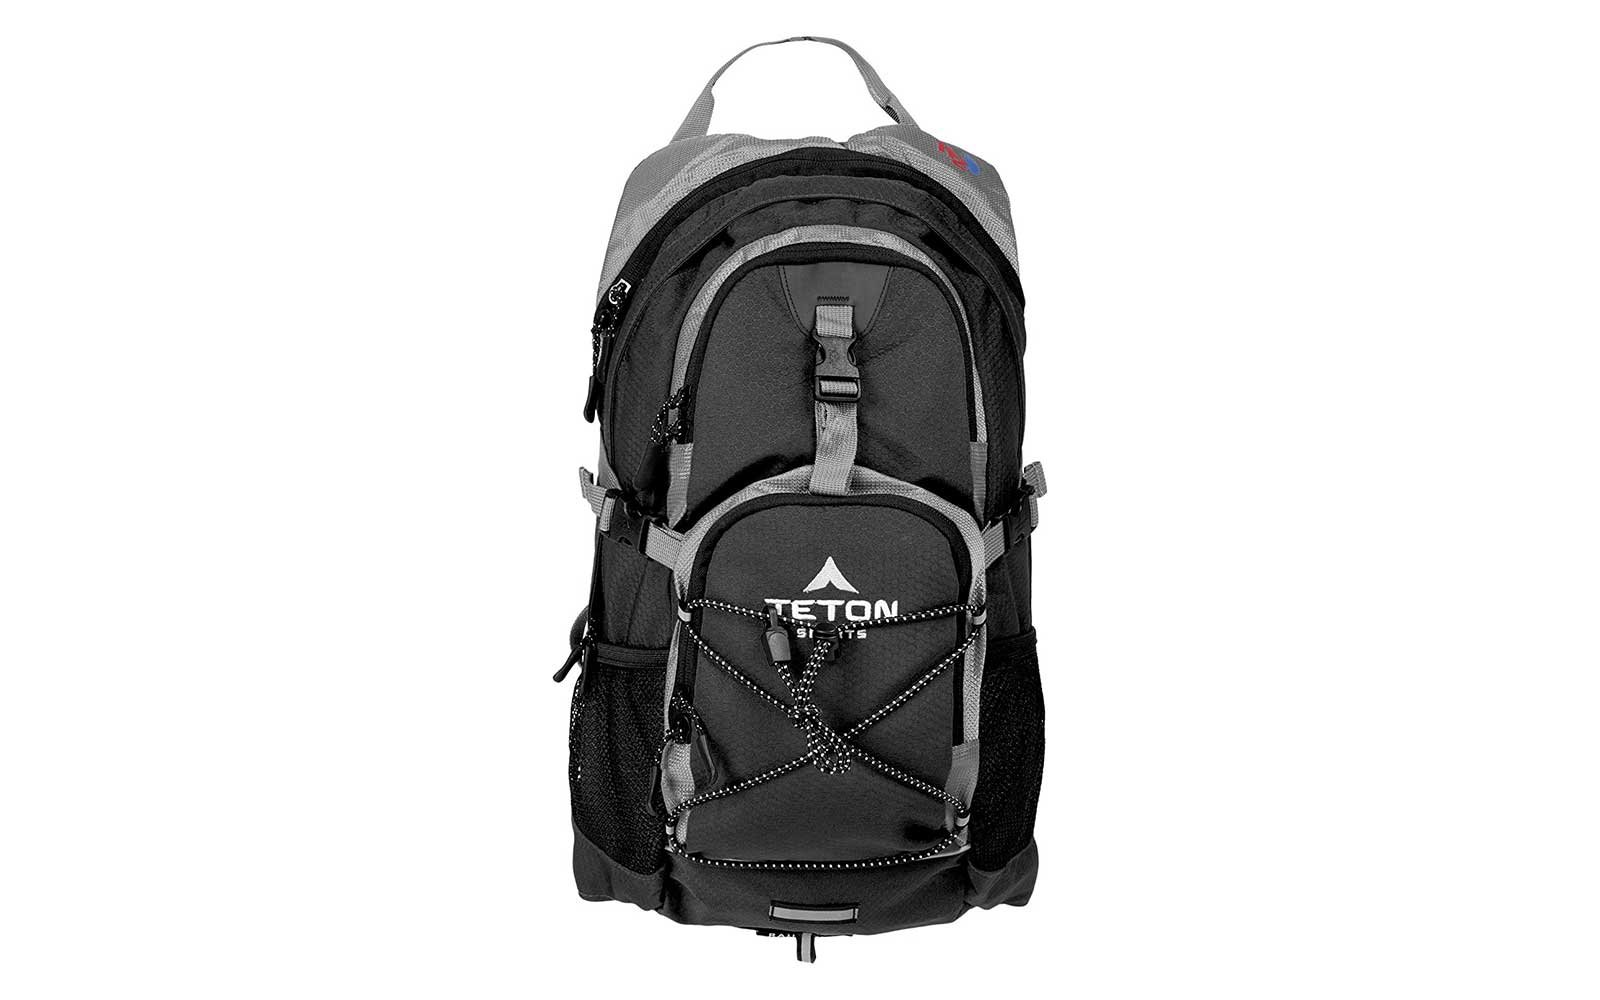 Hydration backpack from Teton Sports